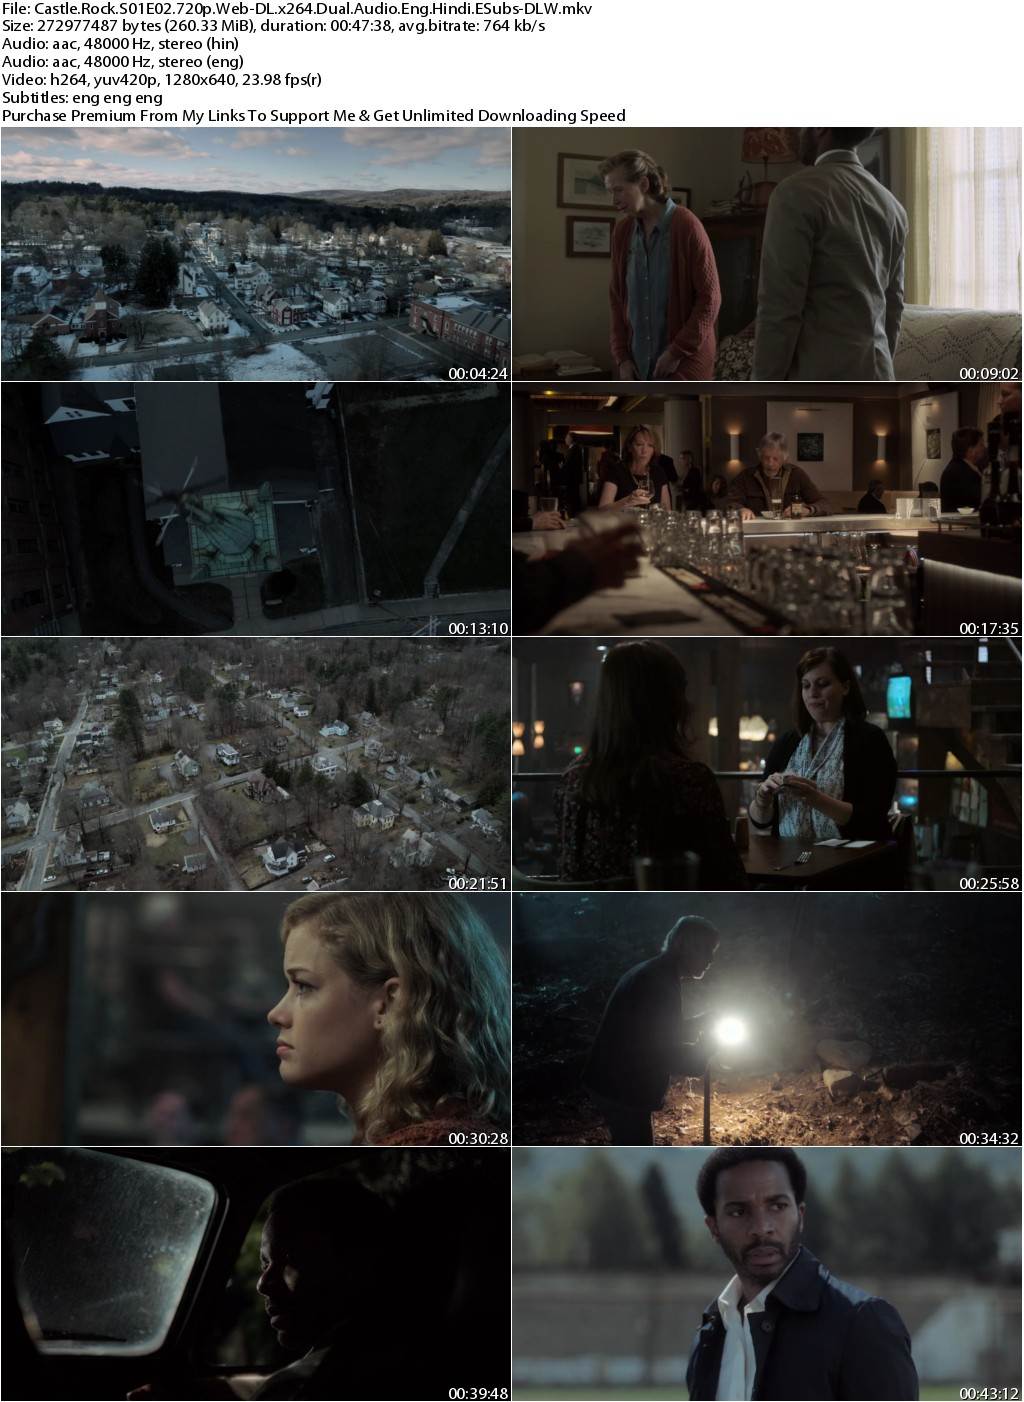 Castle Rock S01 Complete 720p Web-DL Dual Audio Eng Hindi 2.6GB-DLW